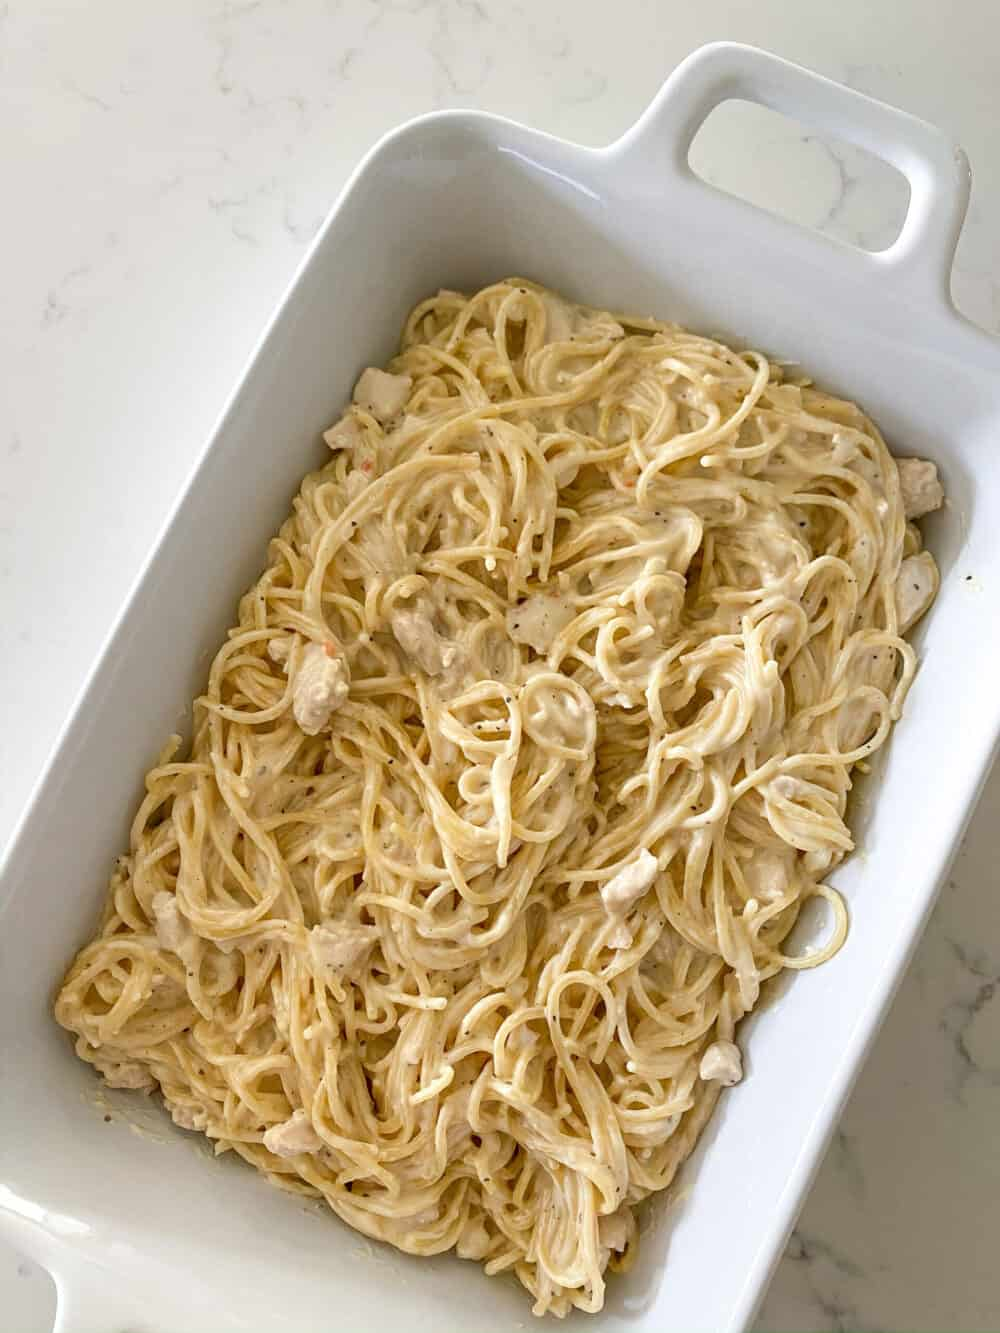 transfer pasta and sauce to baking dish